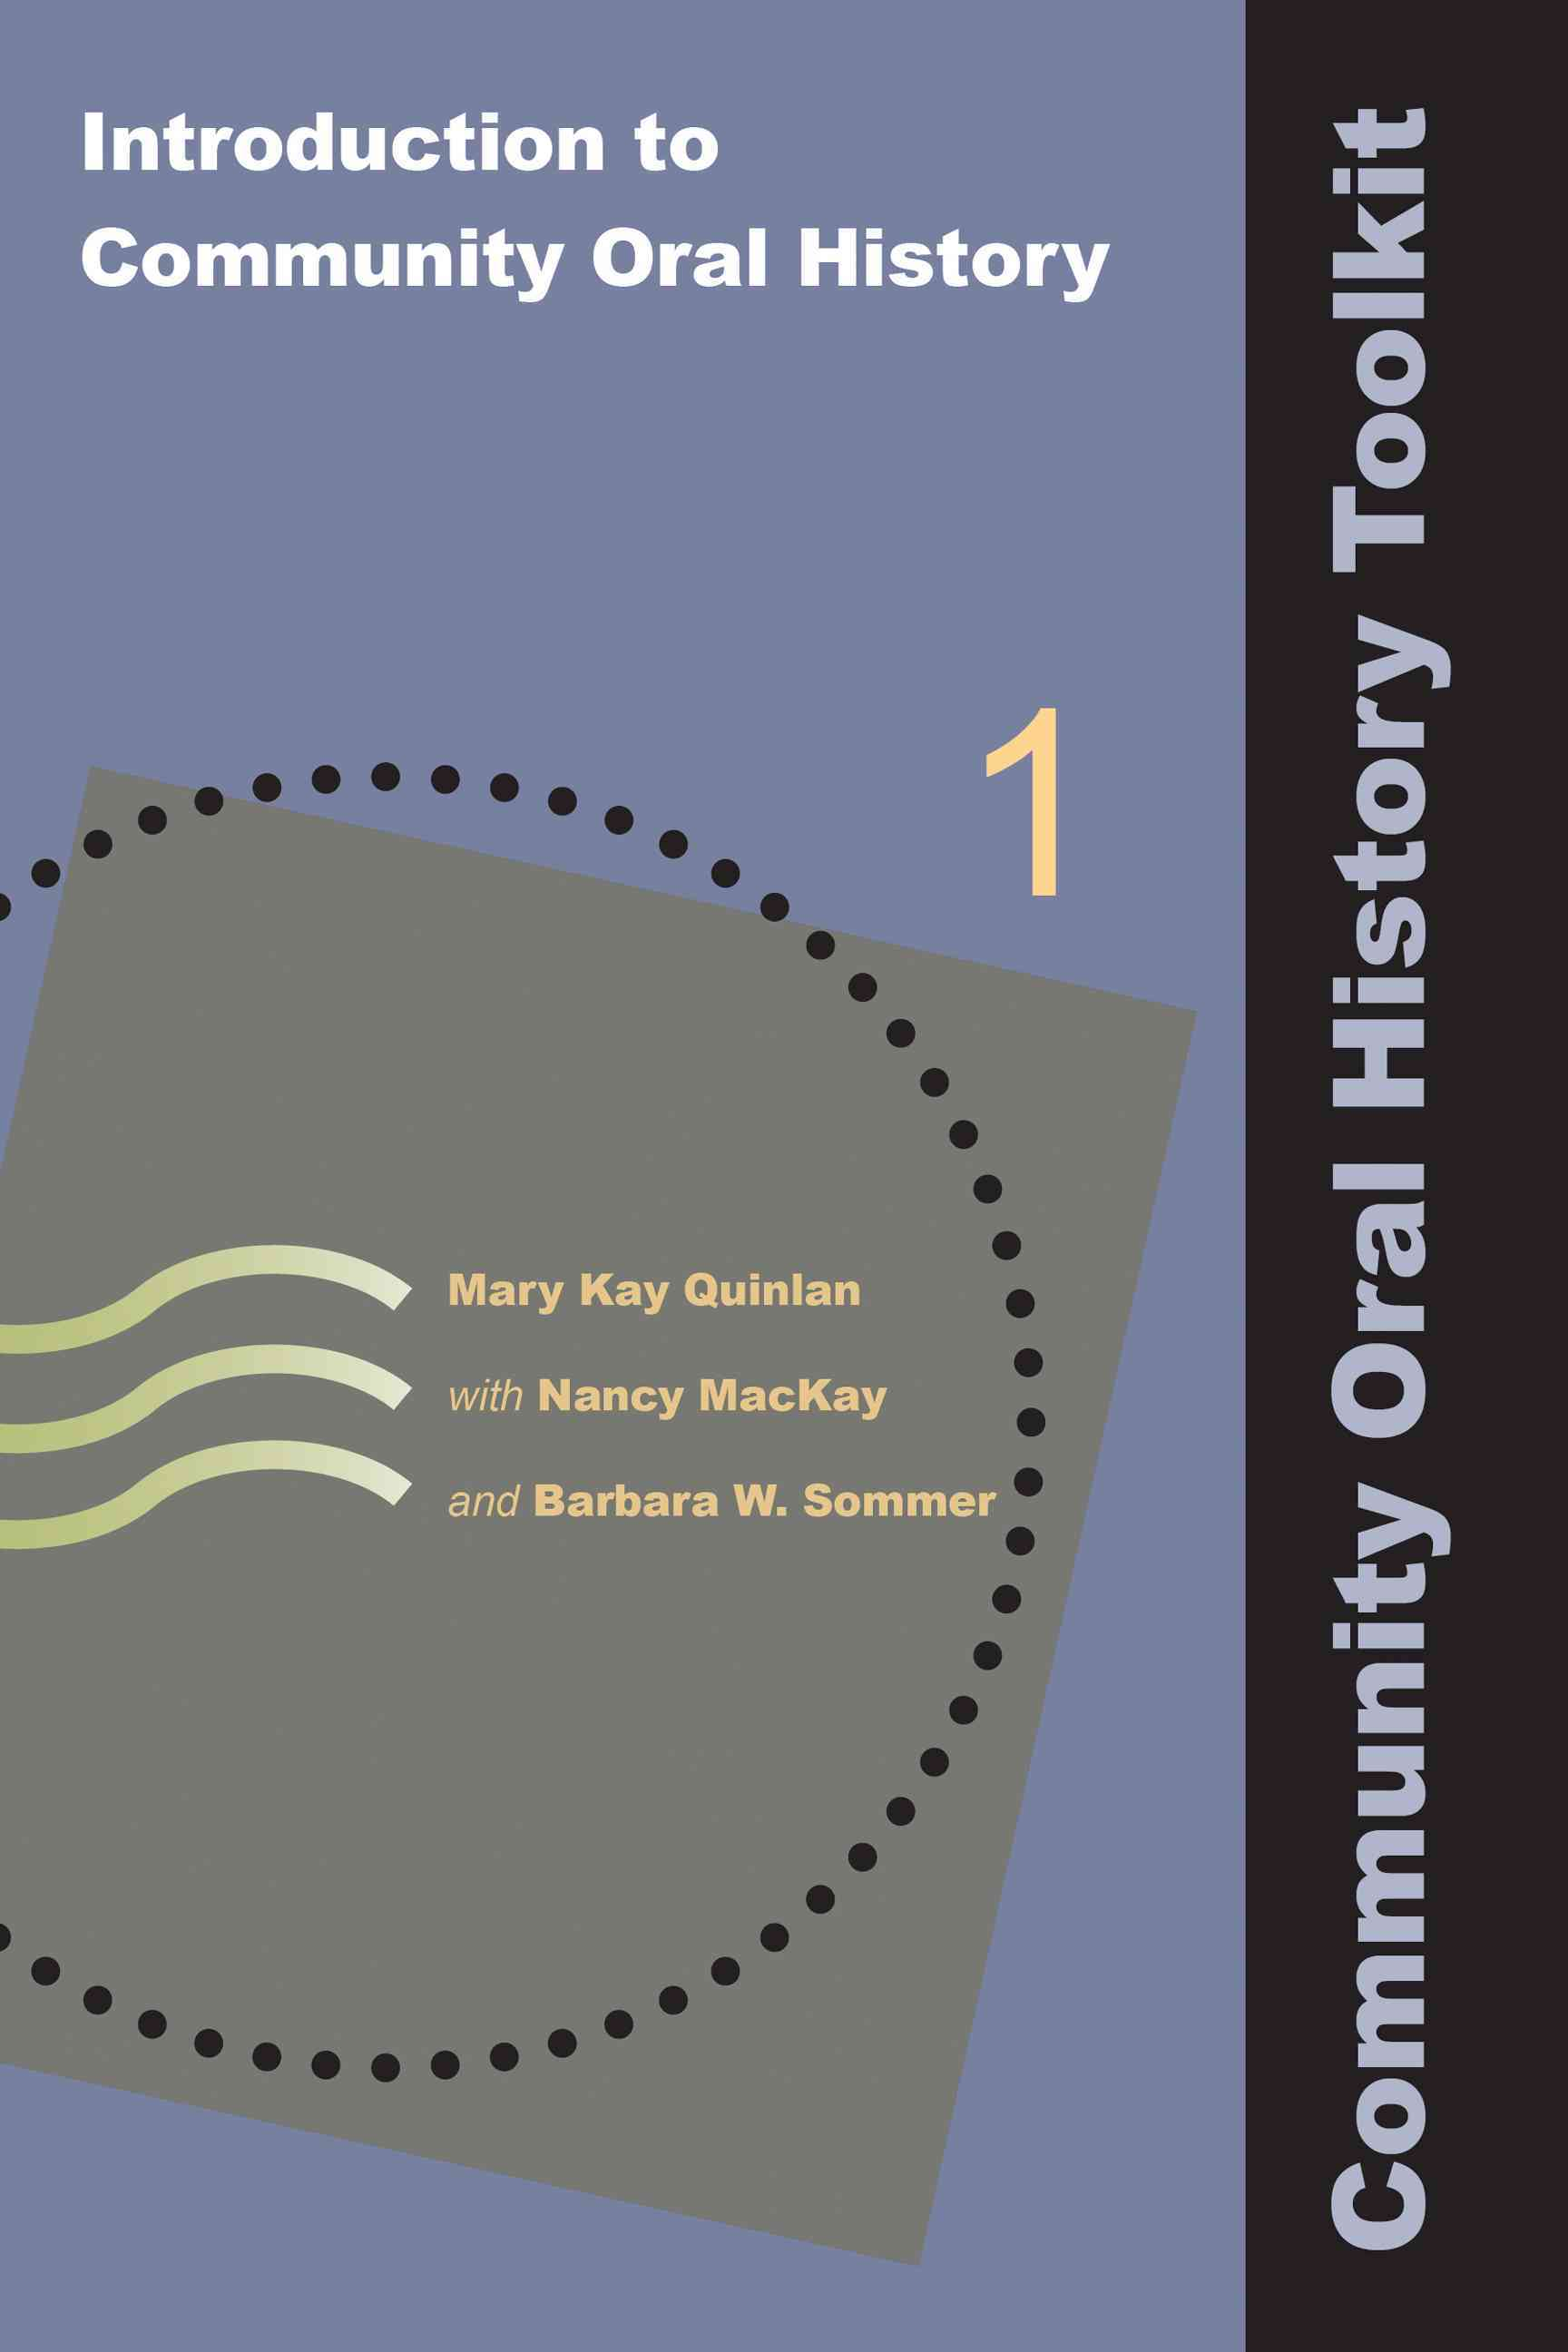 Introduction to Community Oral History By Quinlan, Mary Kay/ MacKay, Nancy/ Sommer, Barbara W.